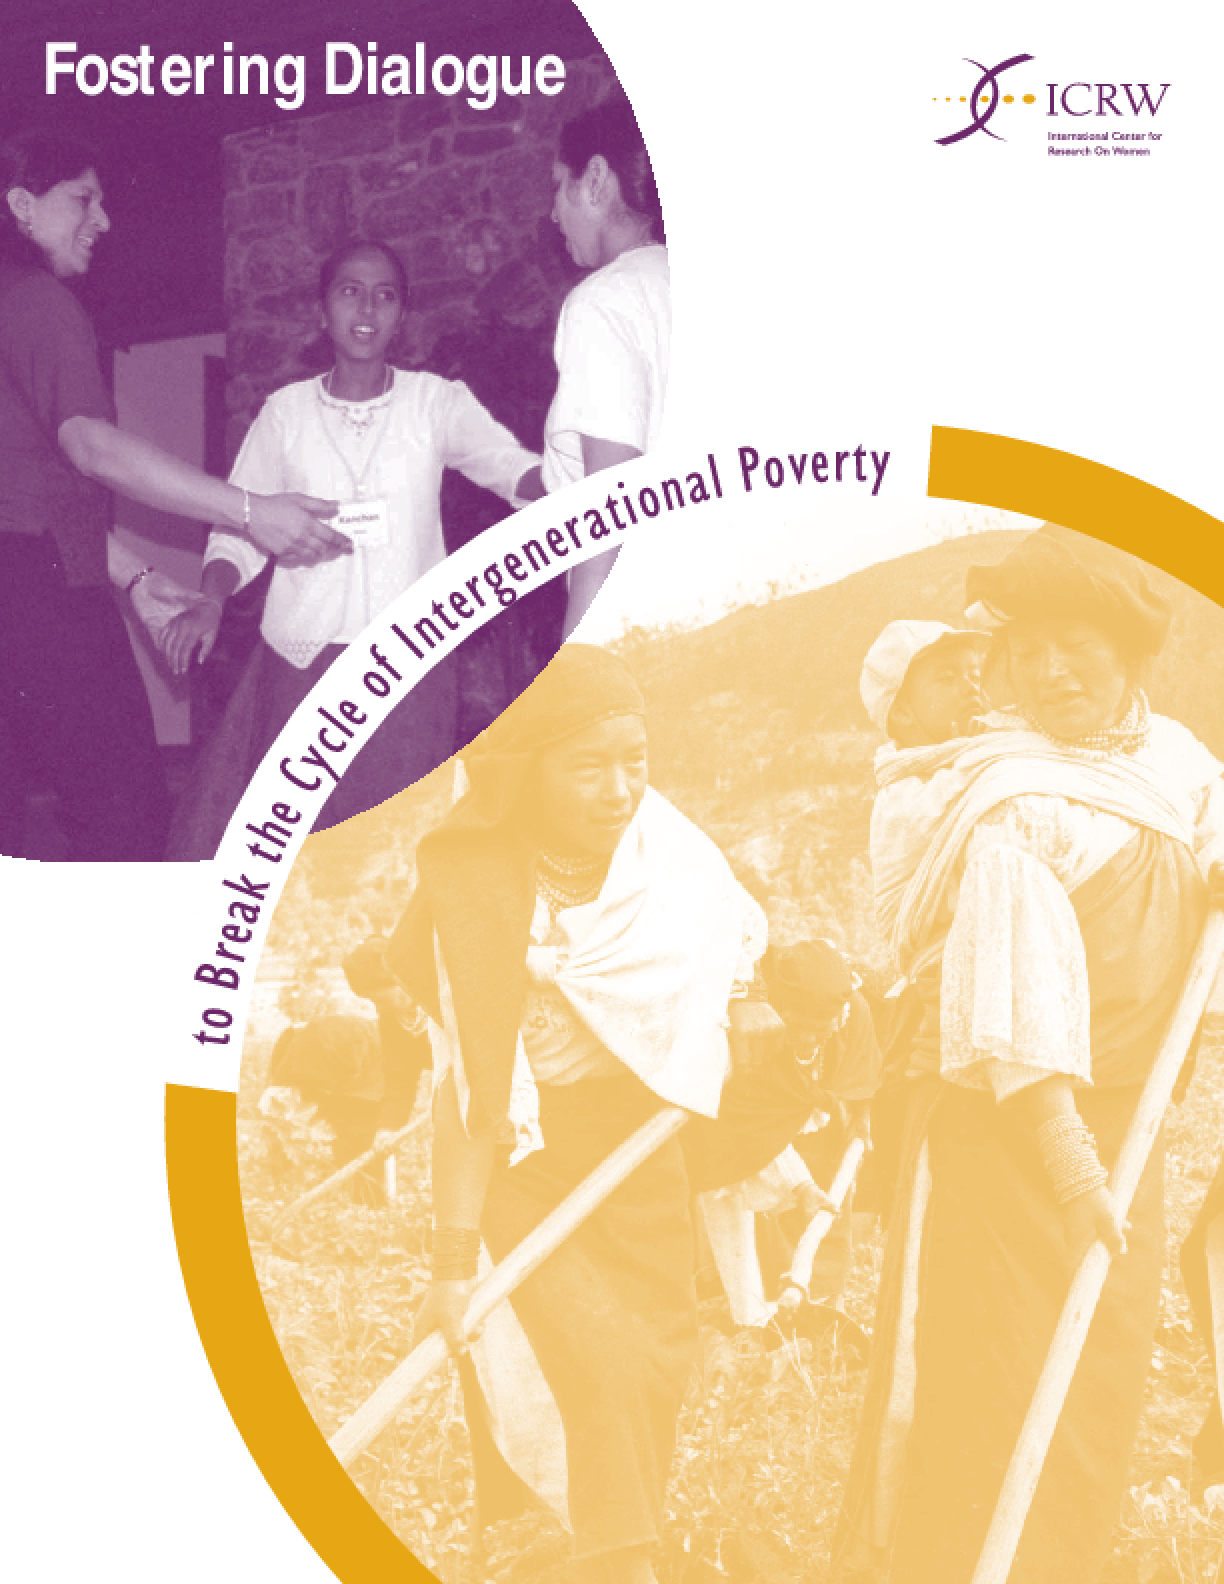 Fostering Dialogue to Break the Cycle of Intergenerational Poverty